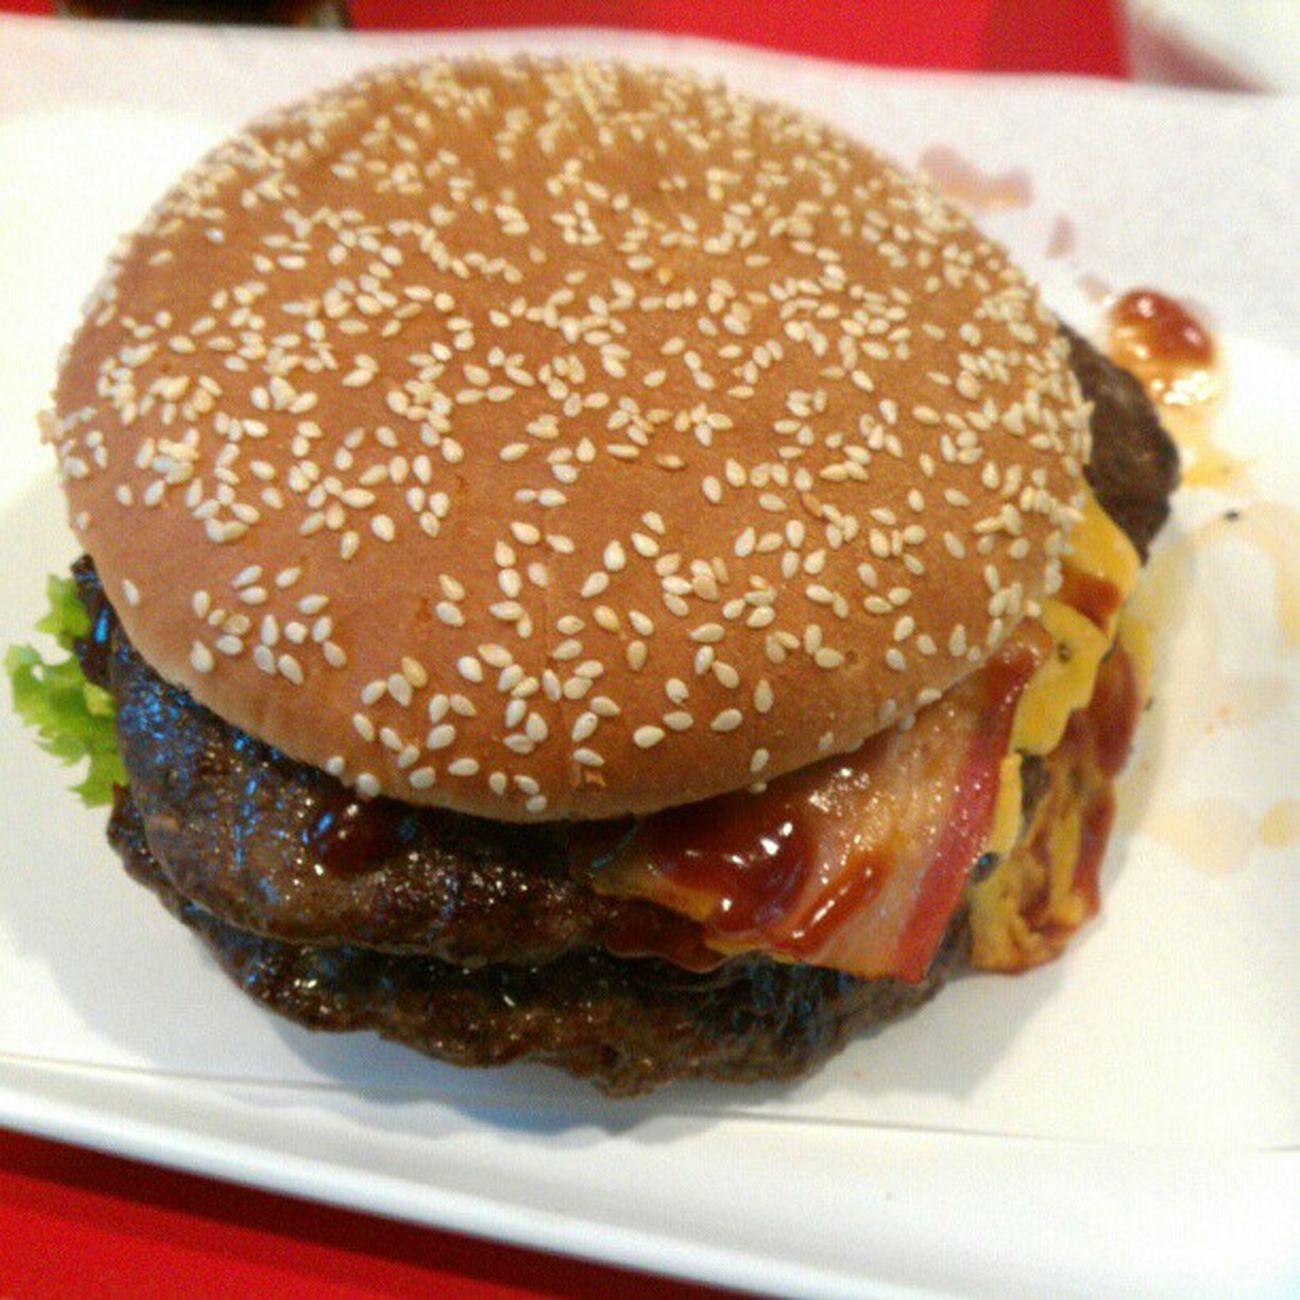 Double Beef + Double Bacon + Double Cheese + Chris = Fresskoma #Burgerium Burgerium